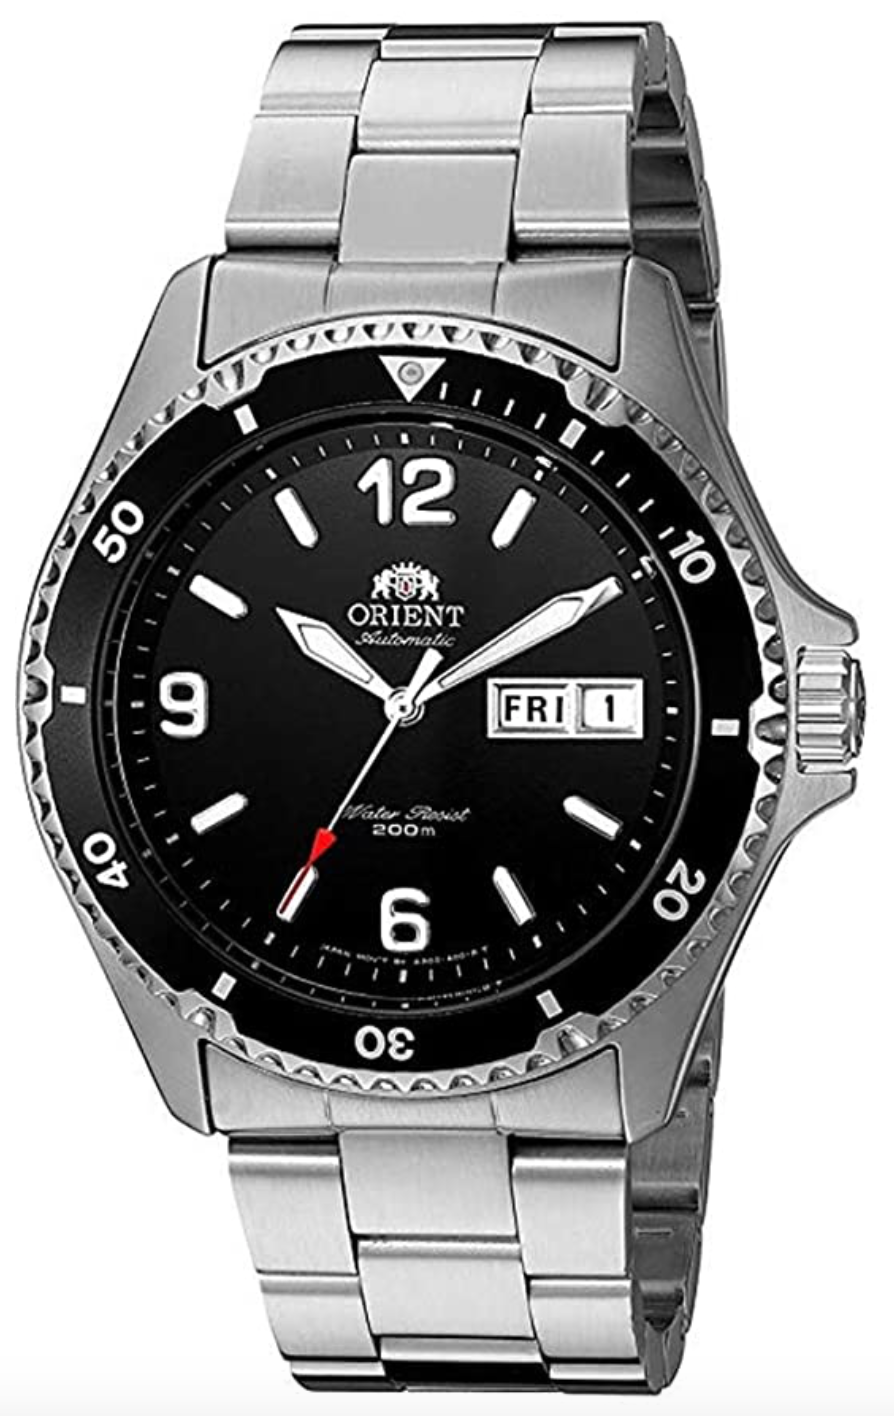 Orient 'Mako II' Automatic Diving Watch